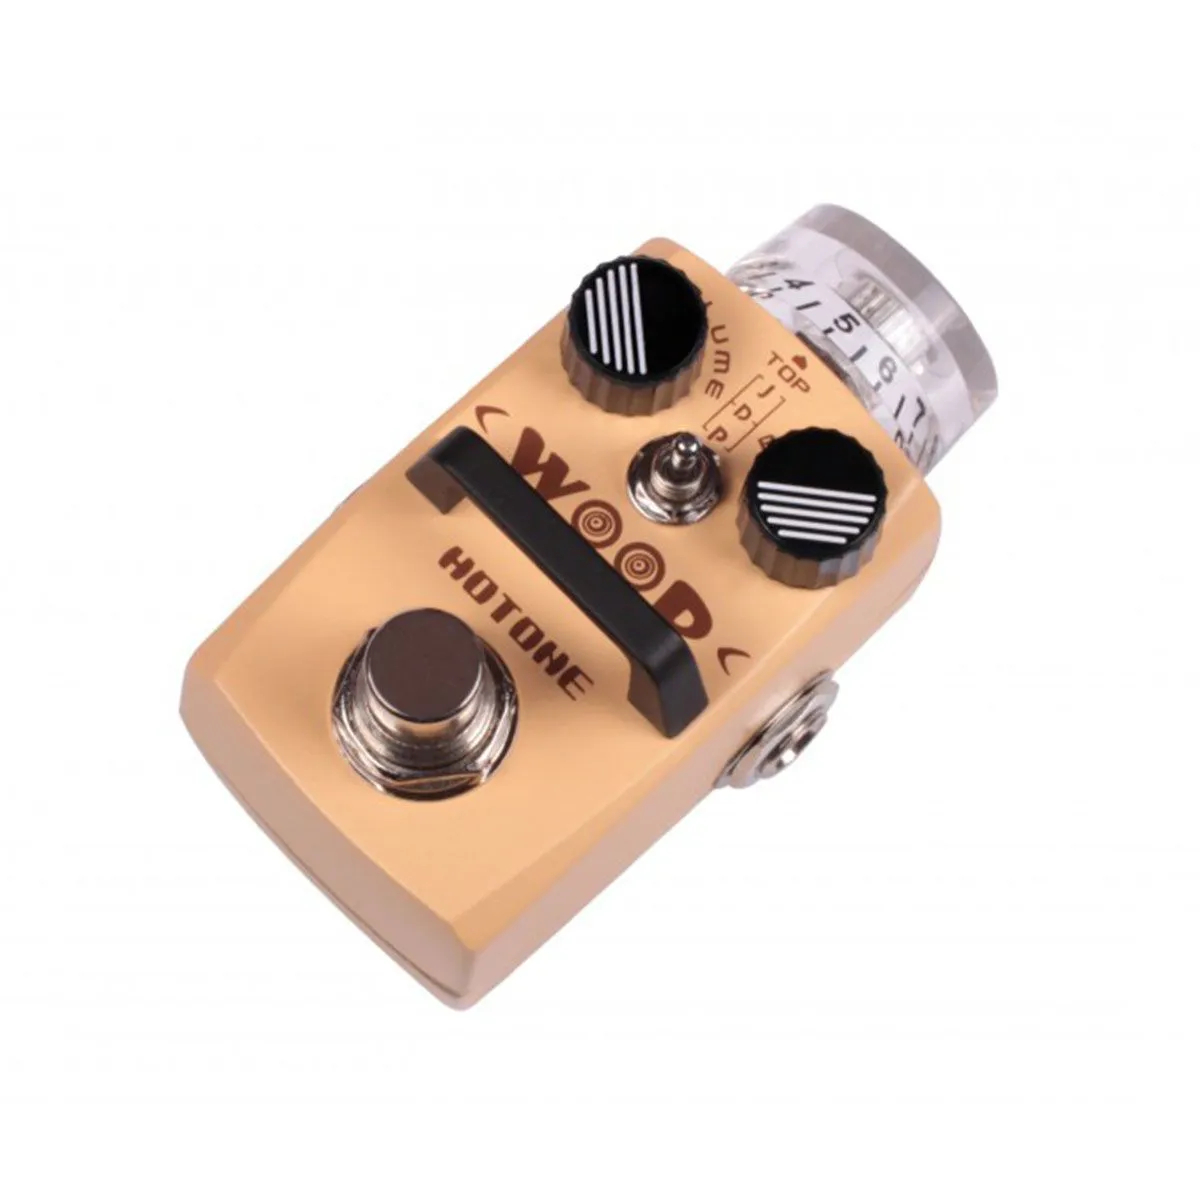 Pedal Hotone Skyline Wood SAC-1 Acoustic Simulation